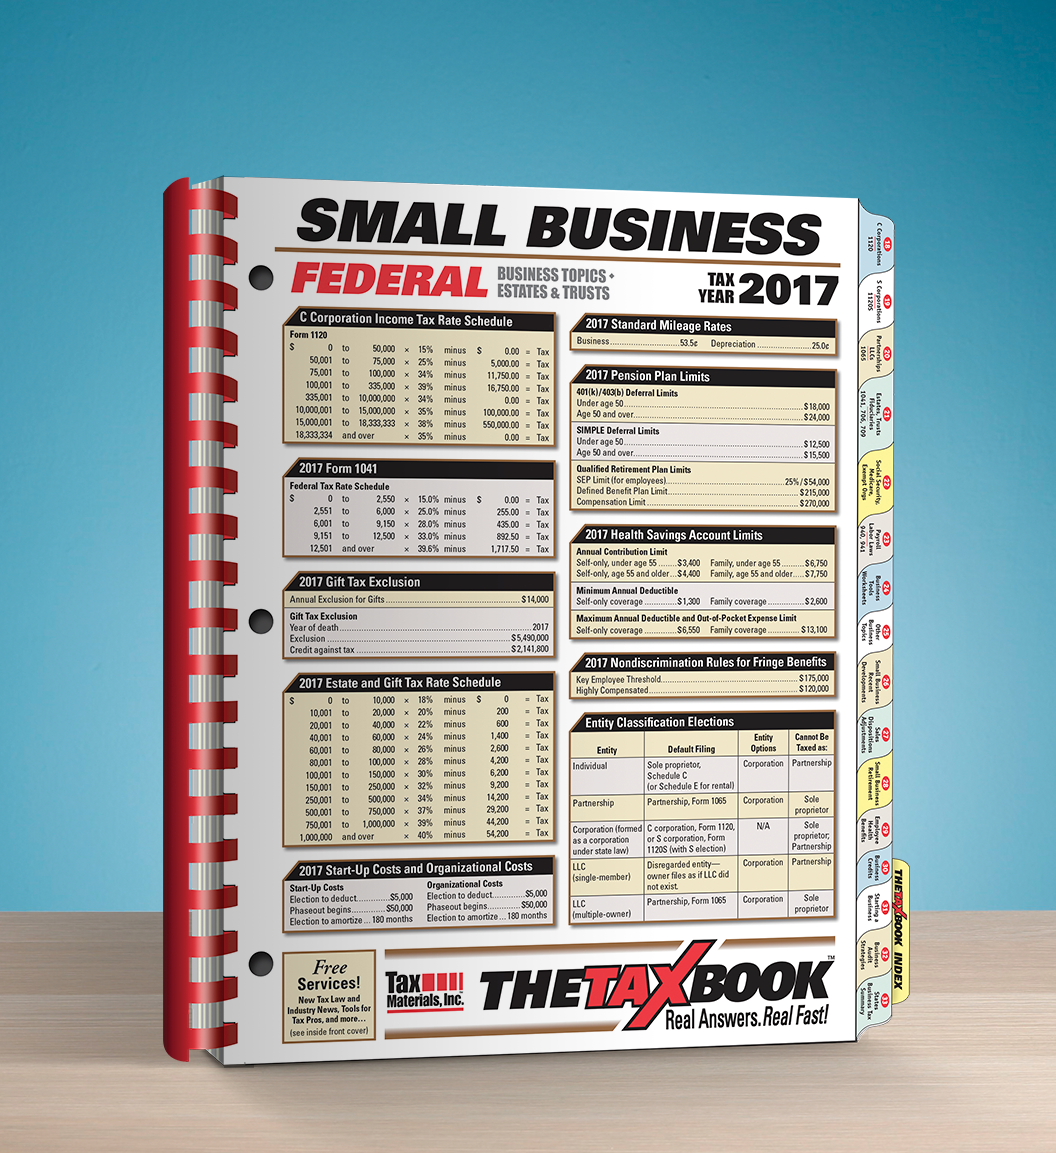 TheTaxBook Small Business Edition (2017) - #3794